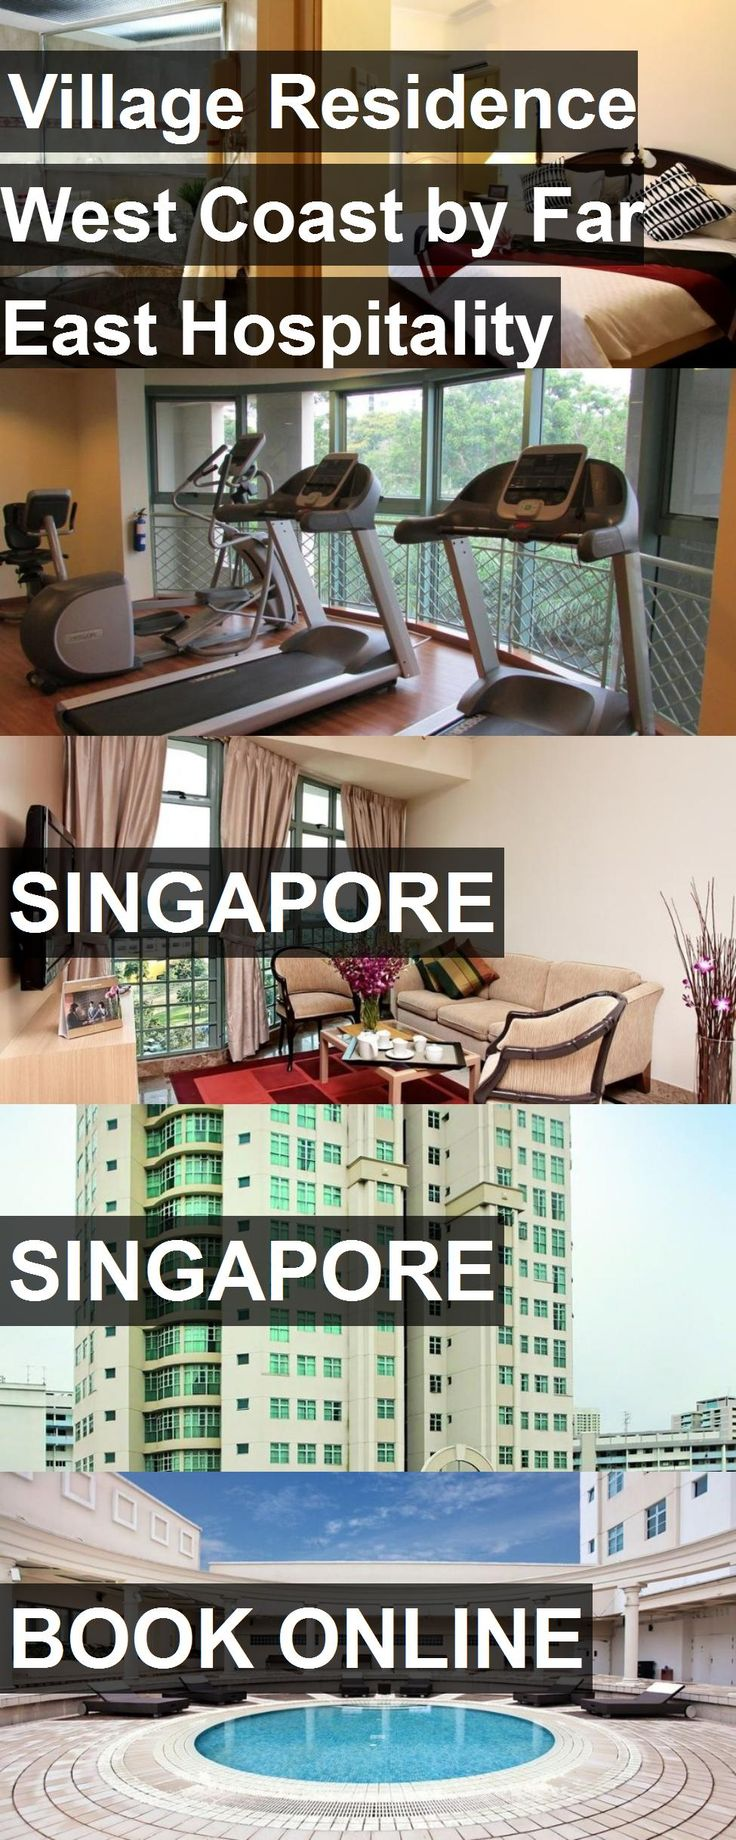 Hotel Village Residence West Coast by Far East Hospitality in Singapore, Singapore. For more information, photos, reviews and best prices please follow the link. #Singapore #Singapore #VillageResidenceWestCoastbyFarEastHospitality #hotel #travel #vacation